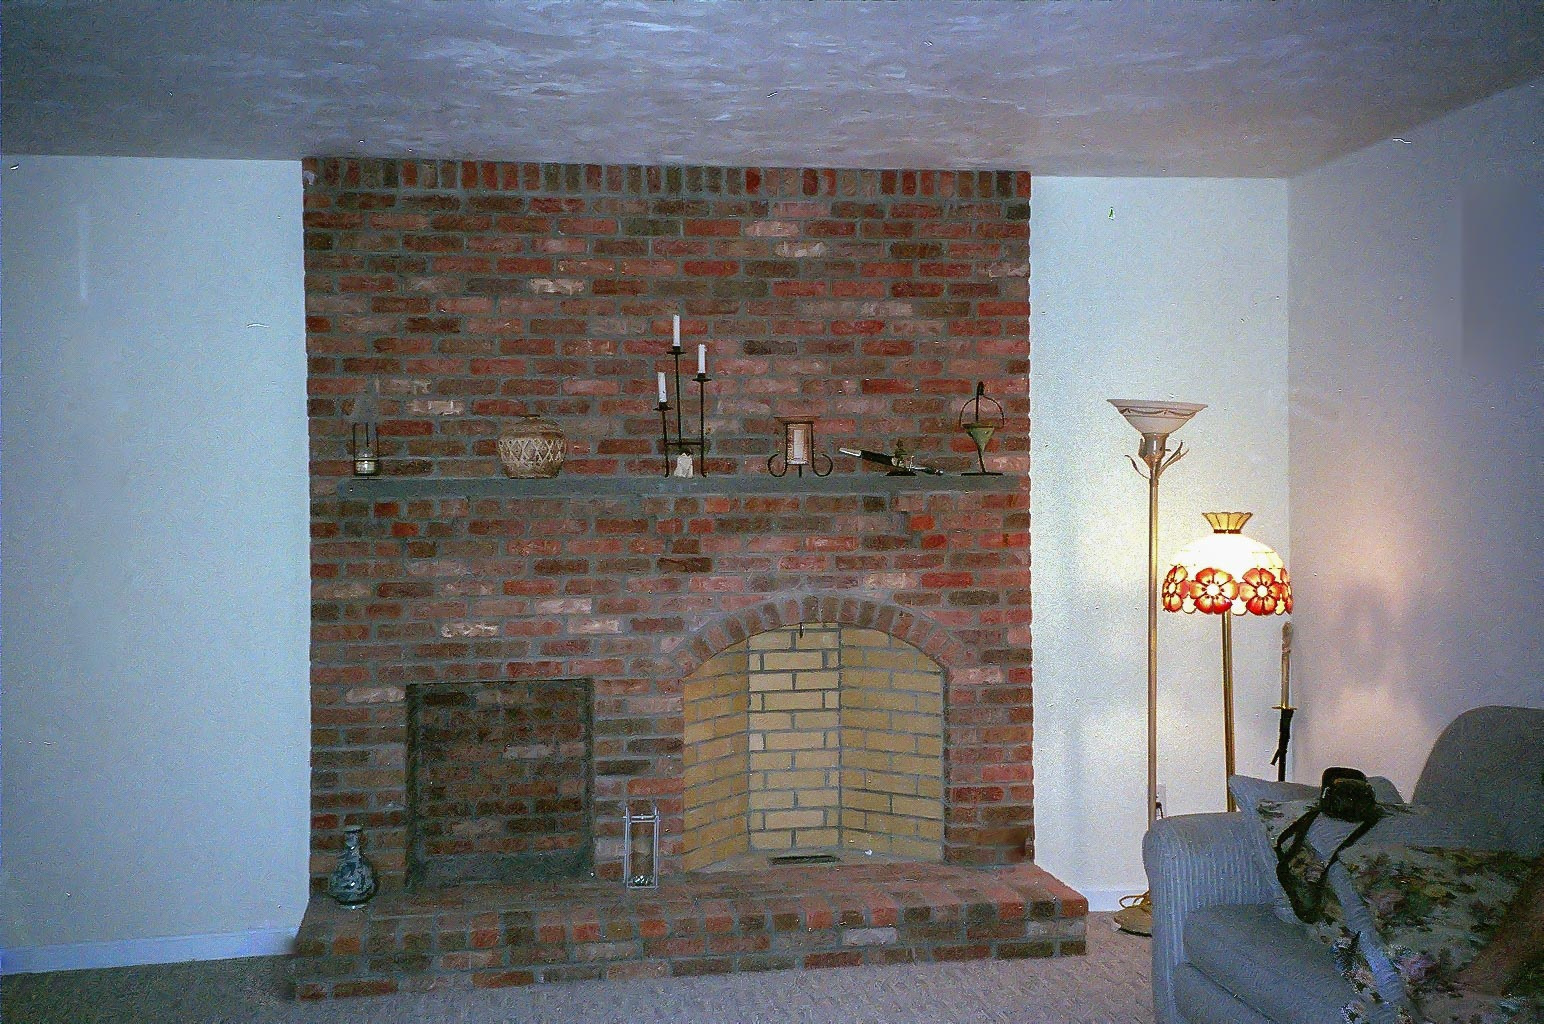 Rumford Fireplace Construction In Massachusetts